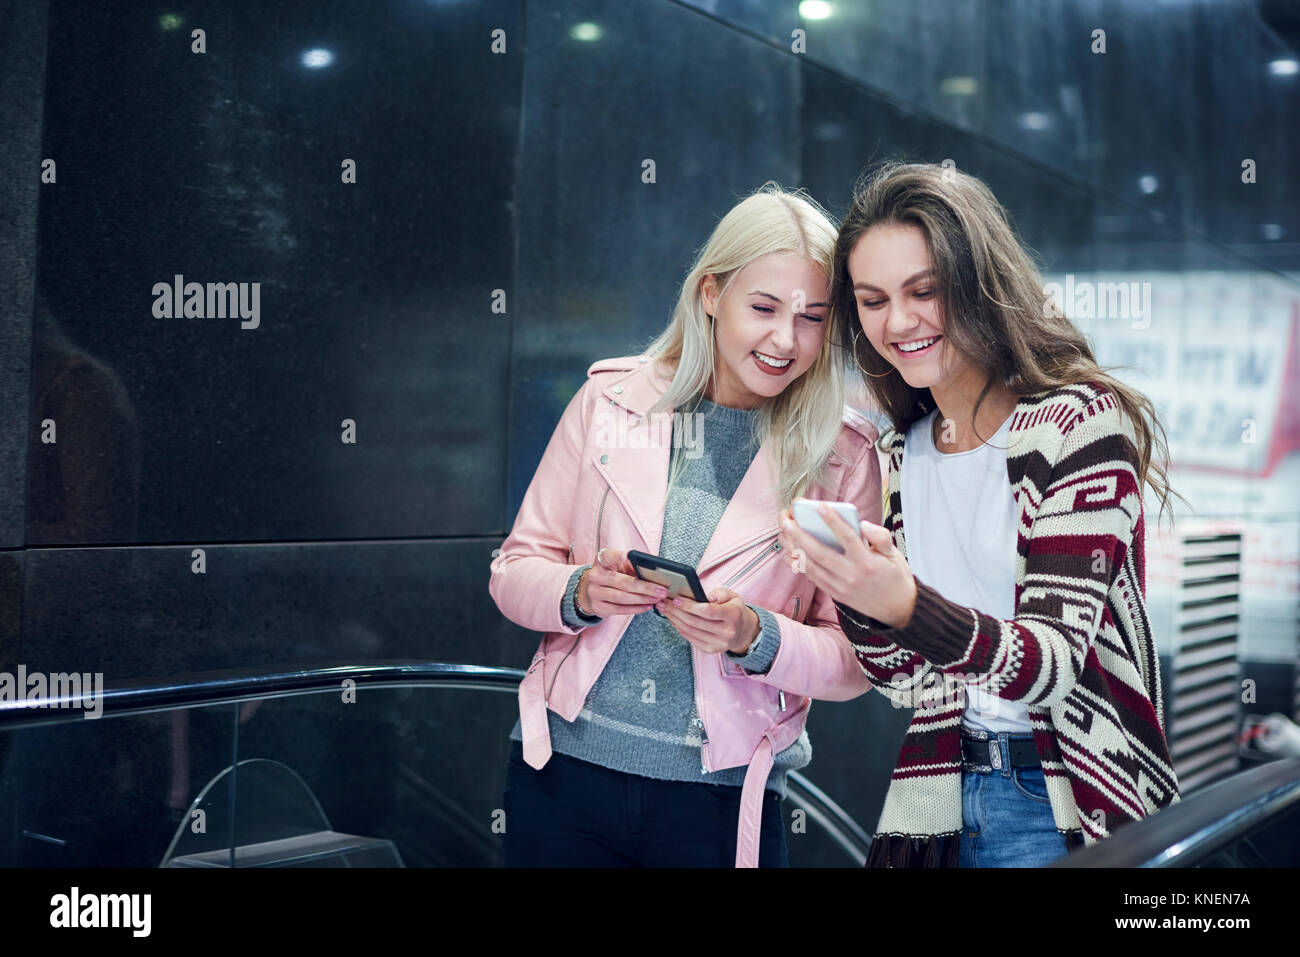 Two young women moving up underground station escalator  looking at smartphone - Stock Image